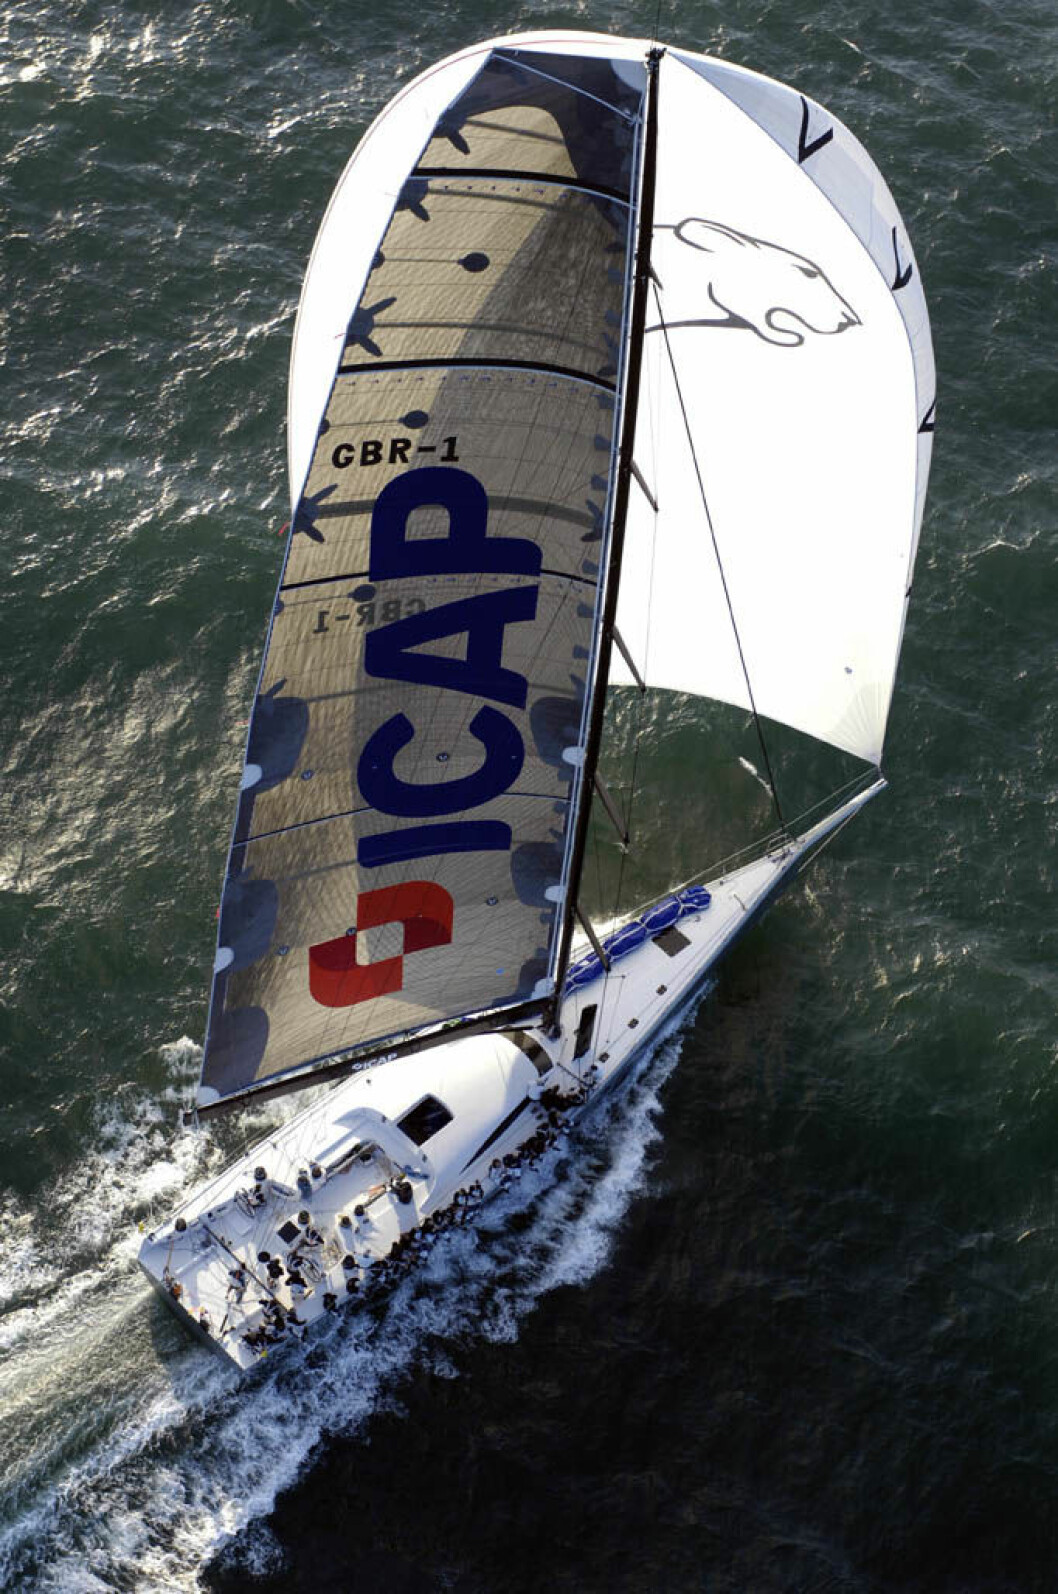 June 23 2007 - JP Morgan Round the Island Race from Cowes  - Isle of Wight.1753 Yachts take part in the annual race around the Isle of WightThe new Farr 100 ICAP Leopard first monohull to finish